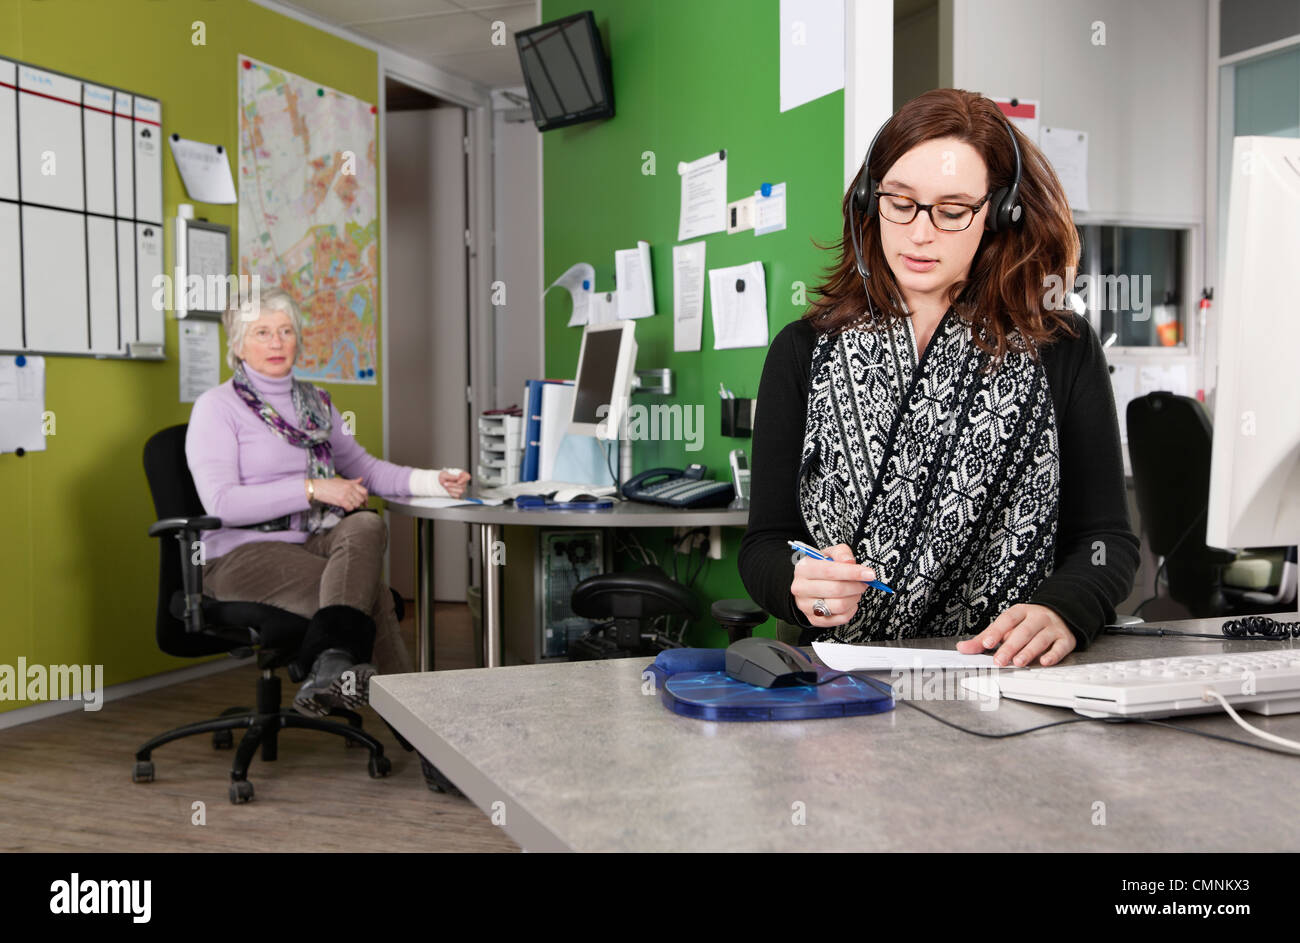 Two employees at work in an emergency response center of a hospital, taking calls from patients. - Stock Image